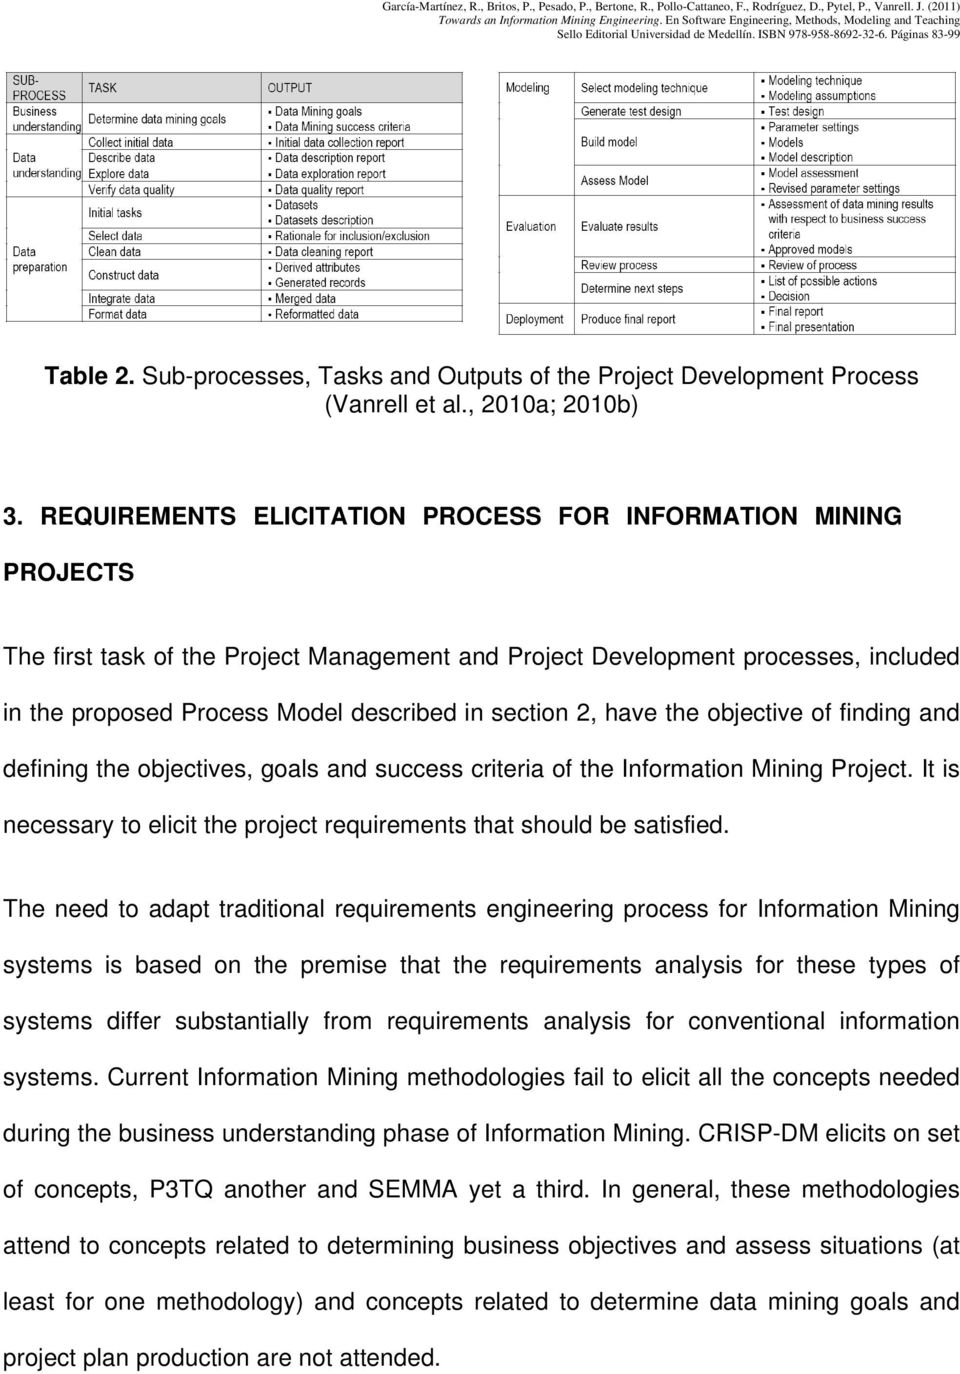 section 2, have the objective of finding and defining the objectives, goals and success criteria of the Information Mining Project.